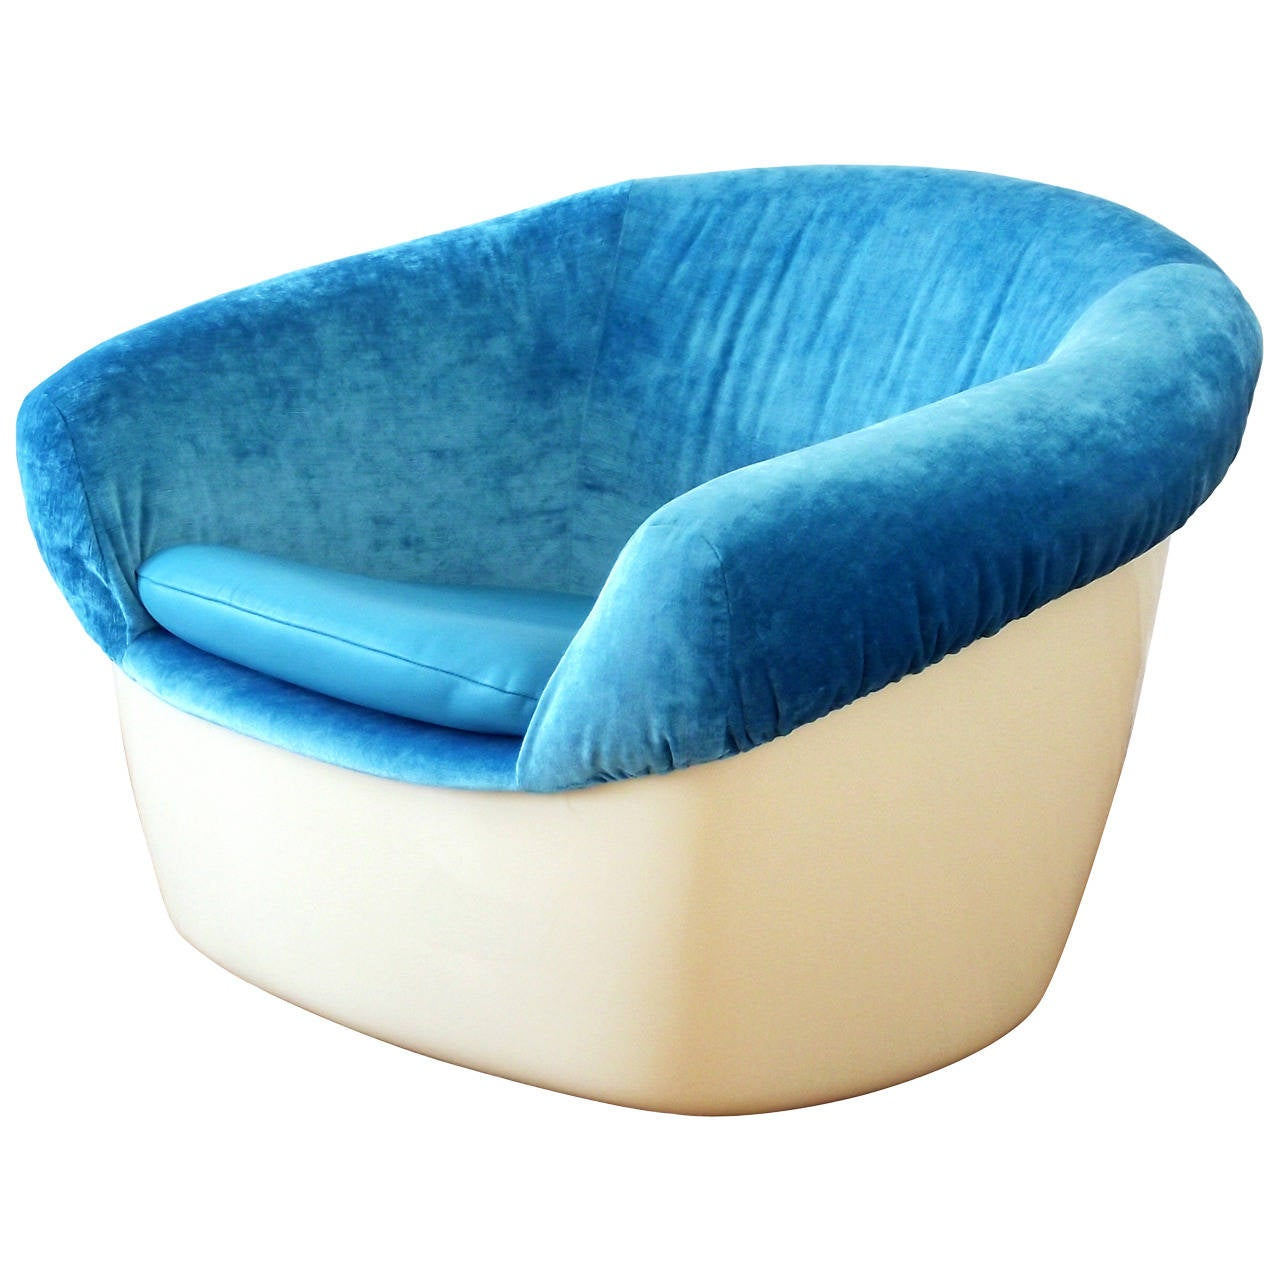 Unique Space Age Lounge Chair in Fiberglass, Blue Velvet and Leather